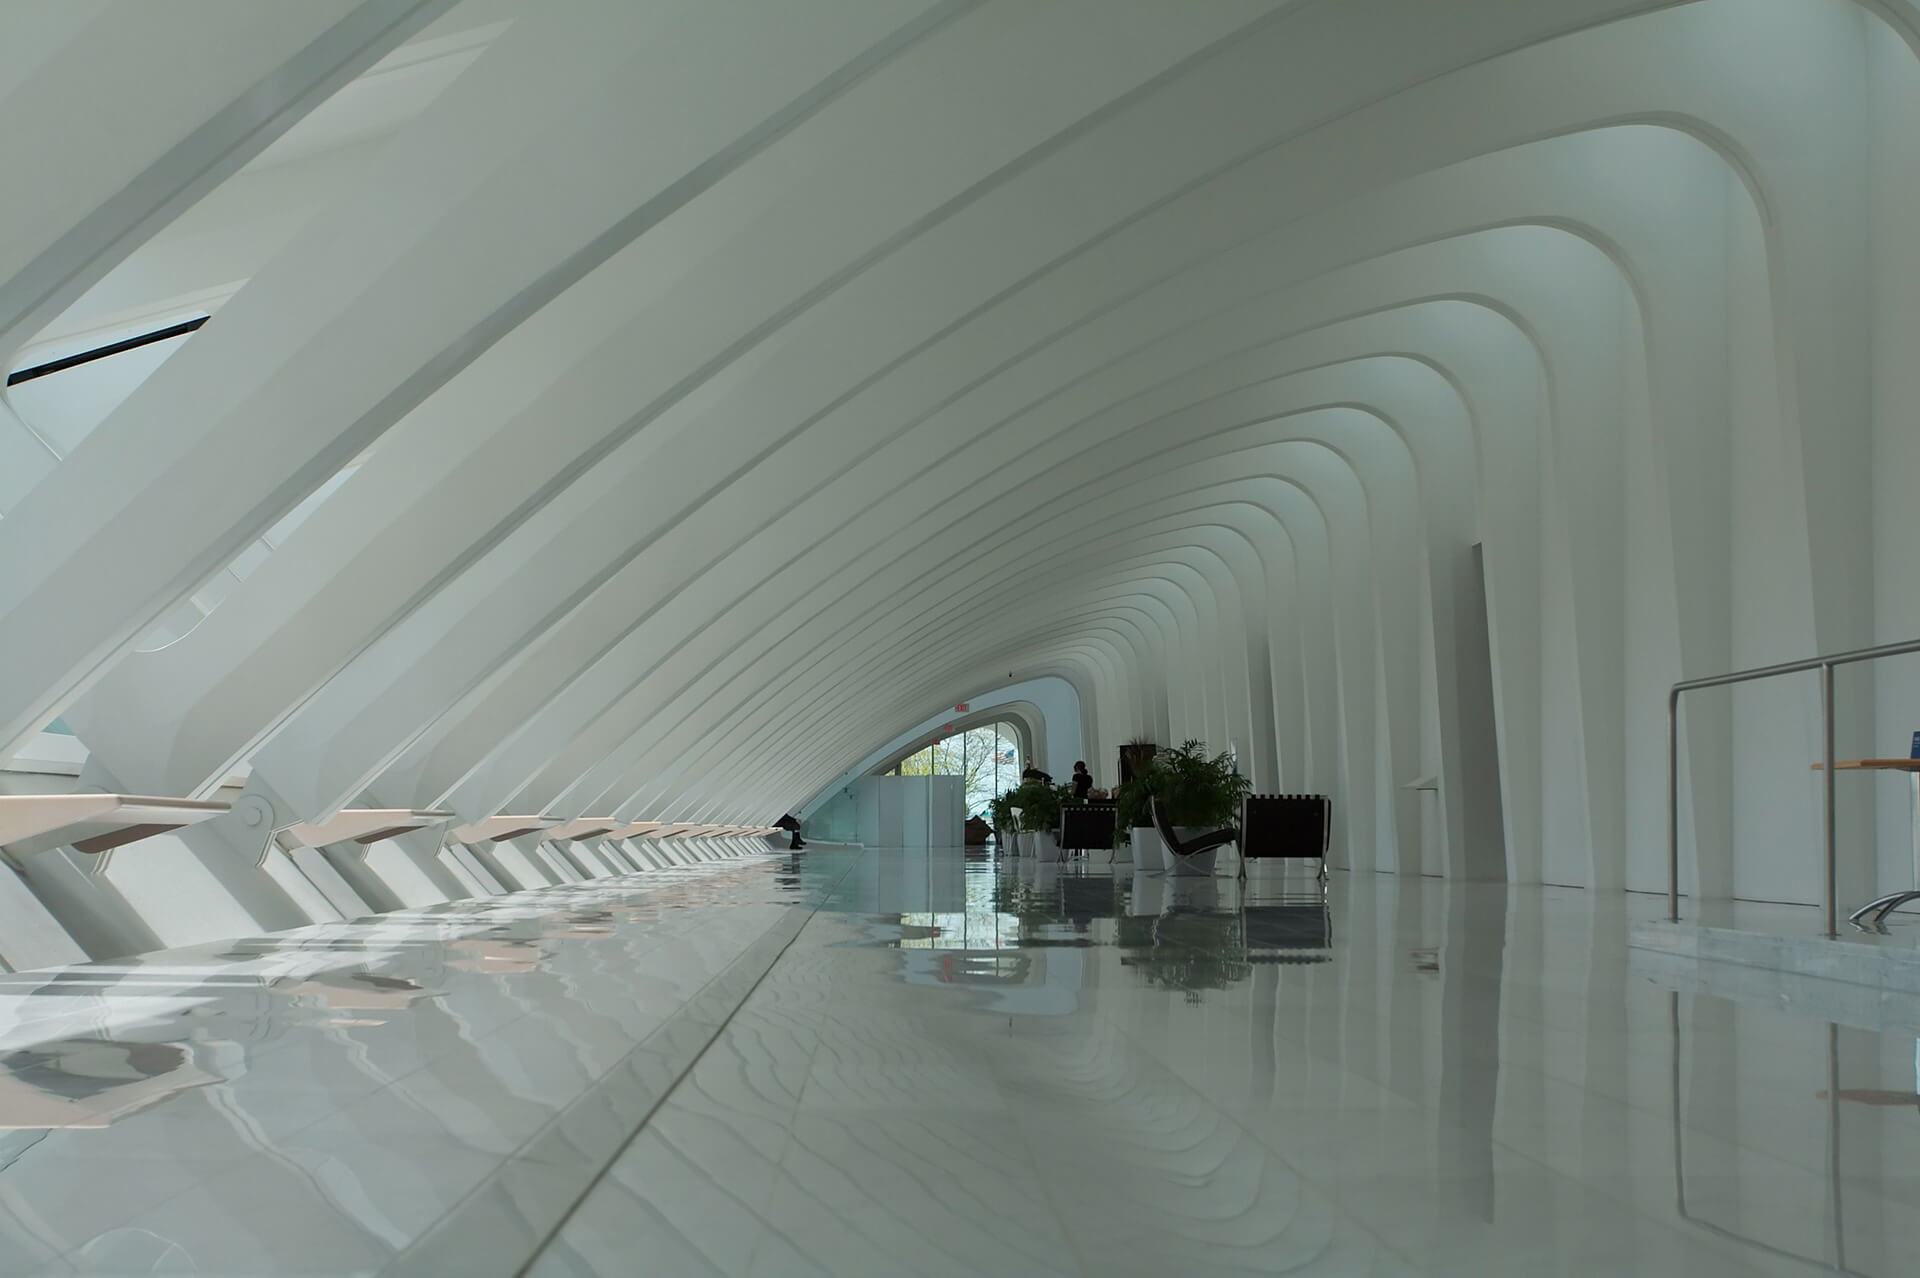 DInteriors of the Milwaukee Art Museum under the wing-like structure | Santiago Calatrava | STIRworldummy